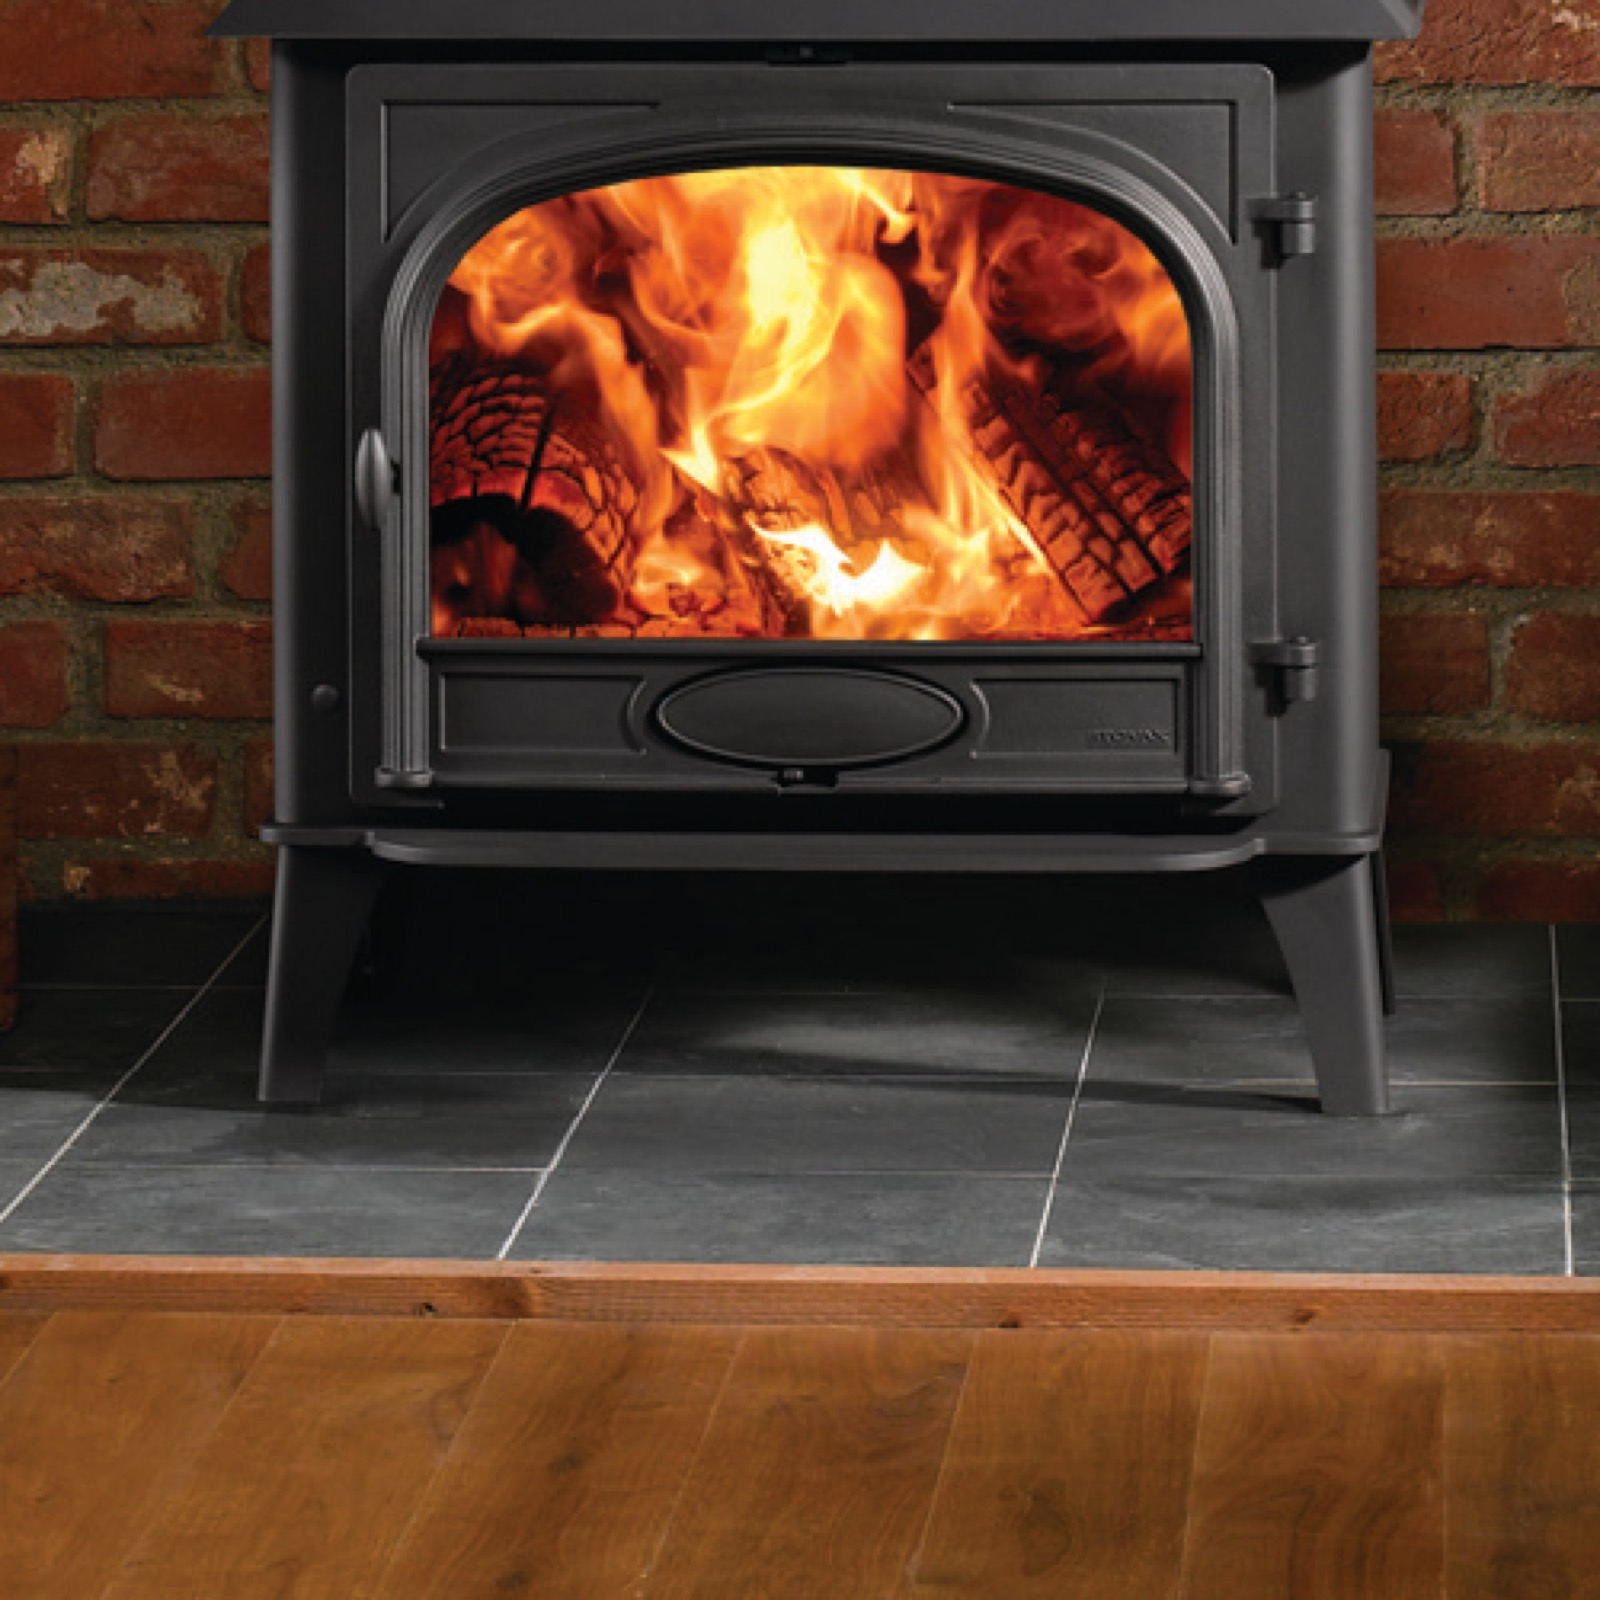 Stovax Stockton 11 Wood Burning Single Door Stove & Stovax Stockton 11 Wood Burning Single Door Stove - Simply Stoves